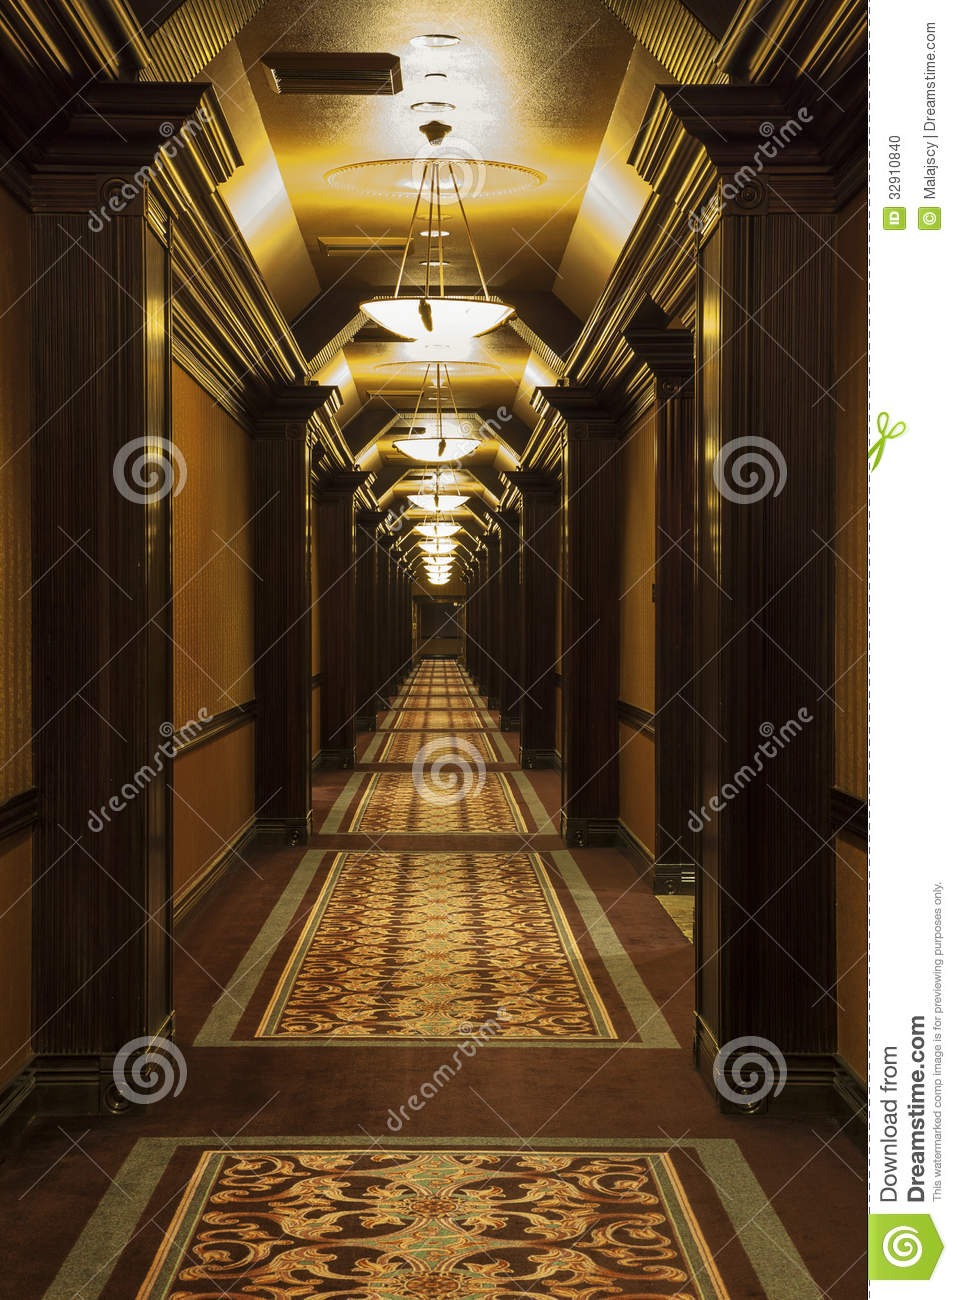 long art deco corridor stock photo image of revival 32910840